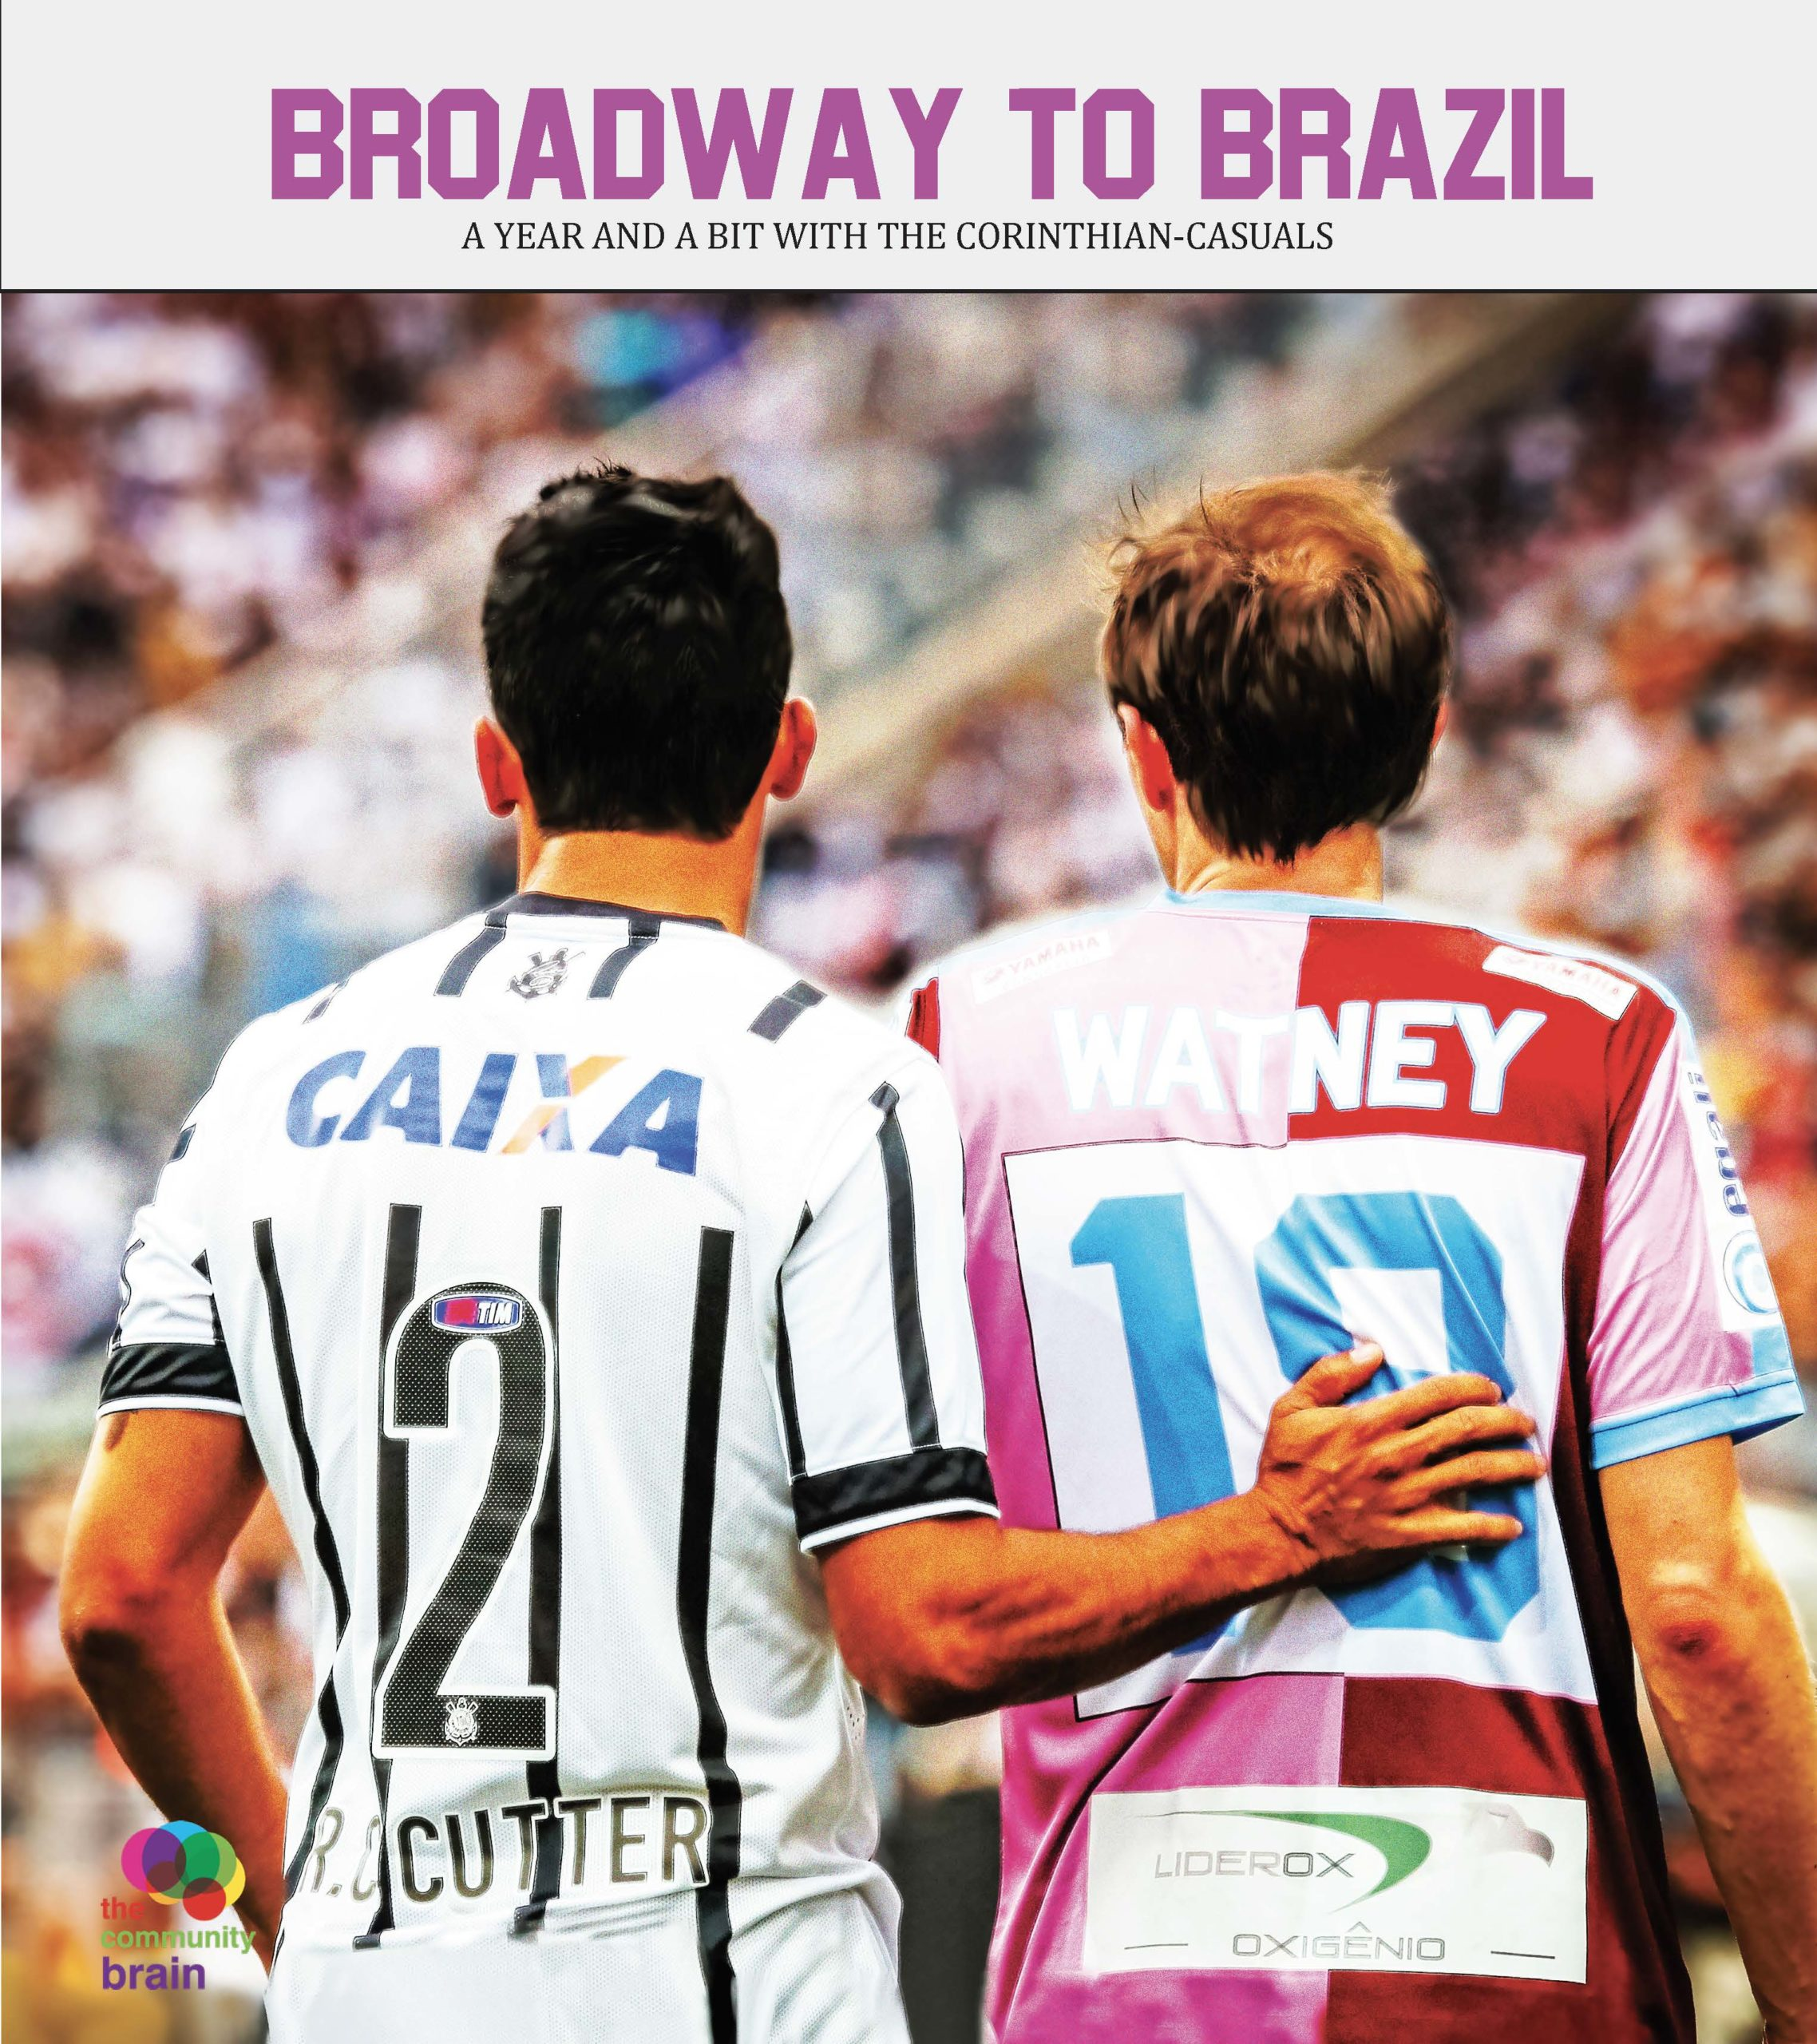 an early cover design for Broadway to Brazil